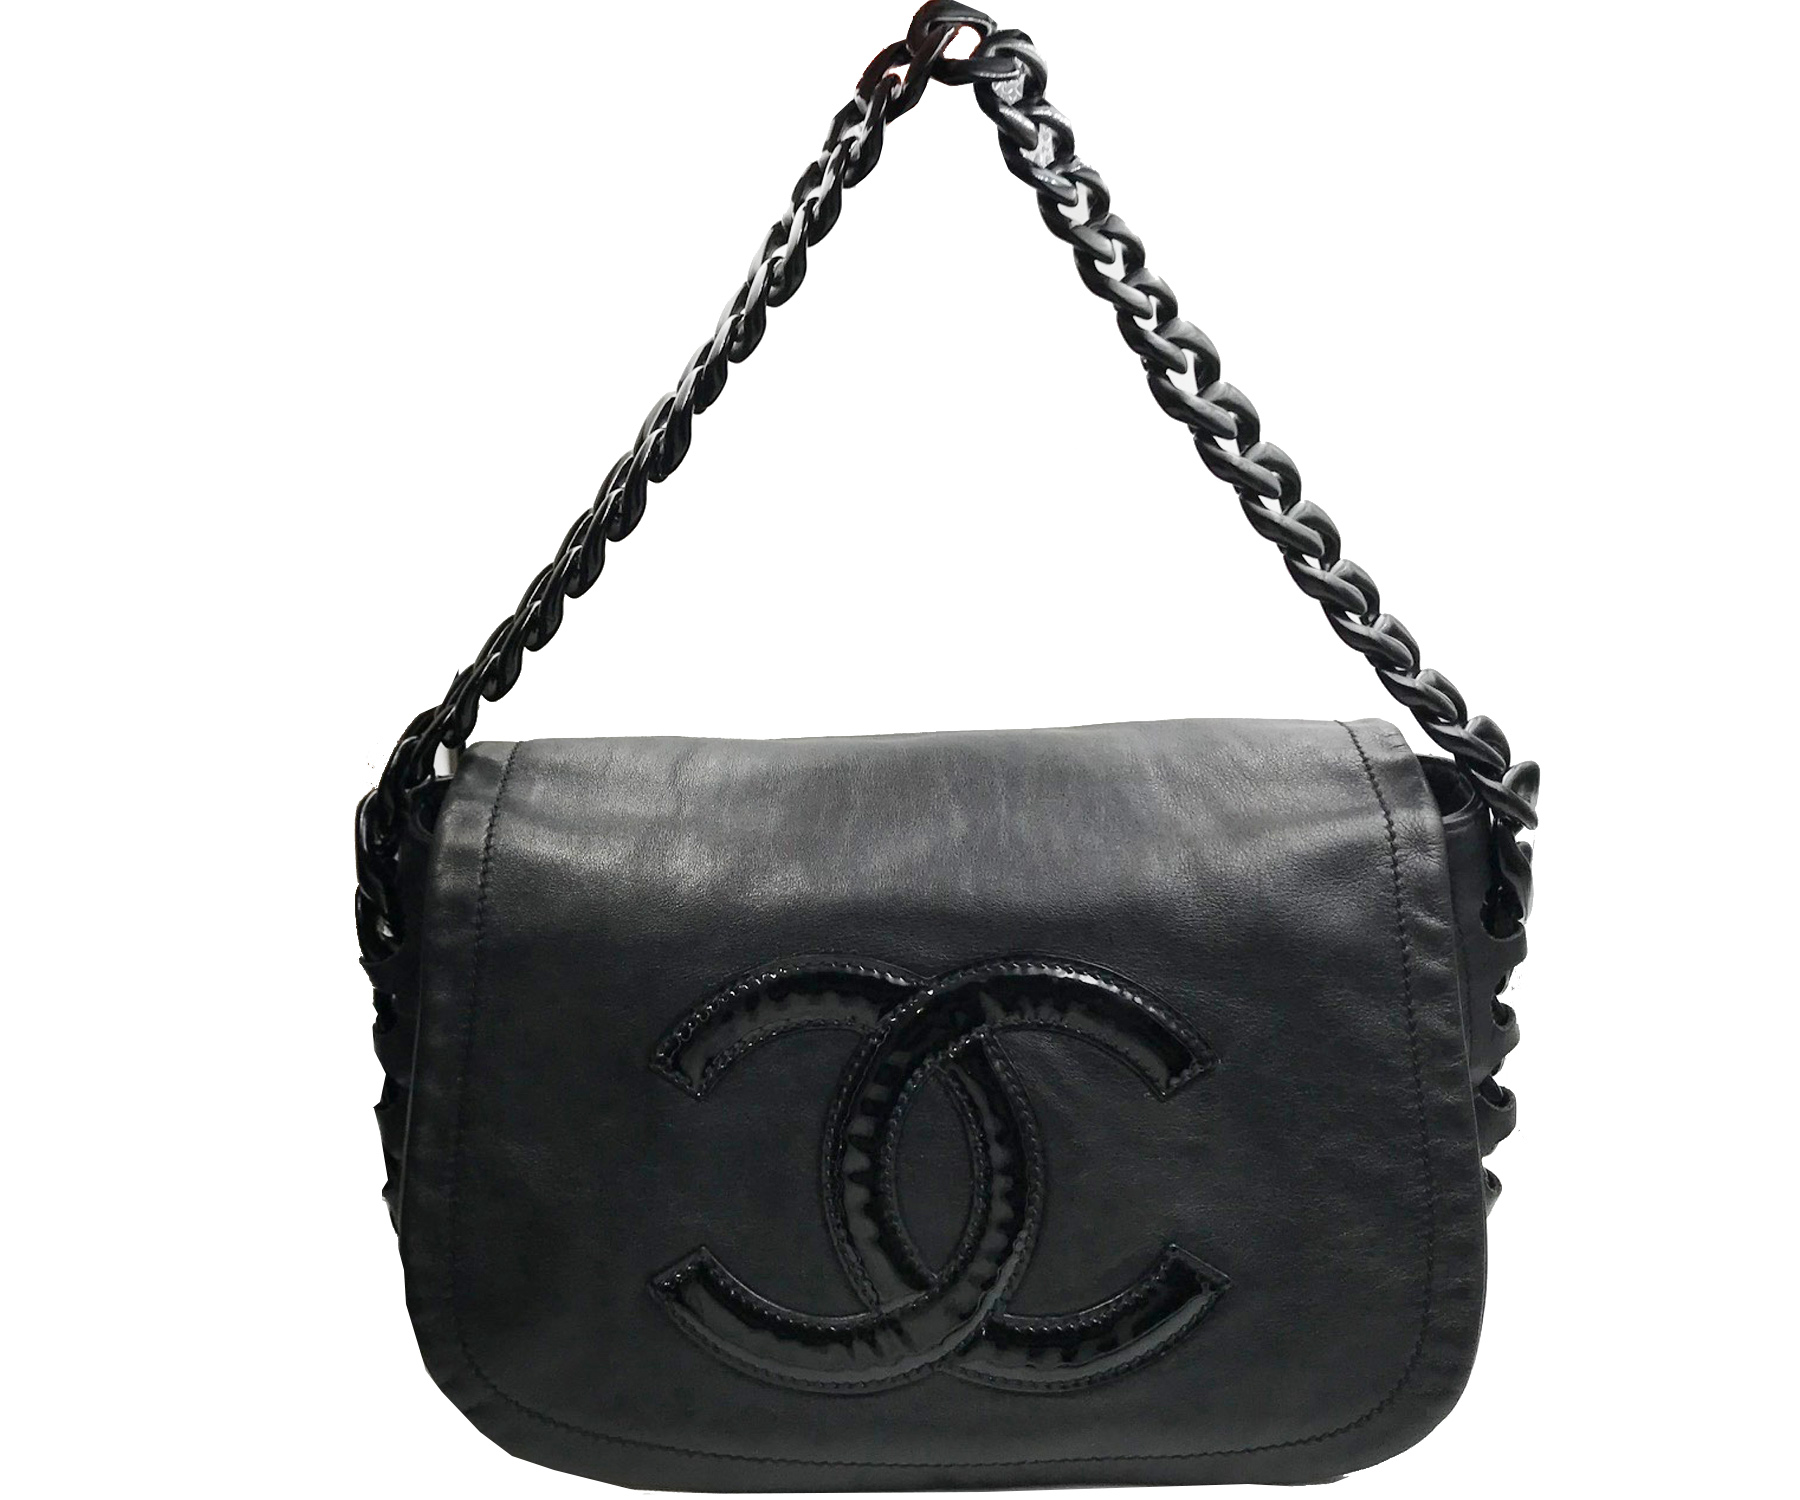 22e7280b662c Chanel Black Modern Chain Rhodoid Flap Shoulder Bag - LAR Vintage. CHANEL  Black Camellia Chocolate Bar ...